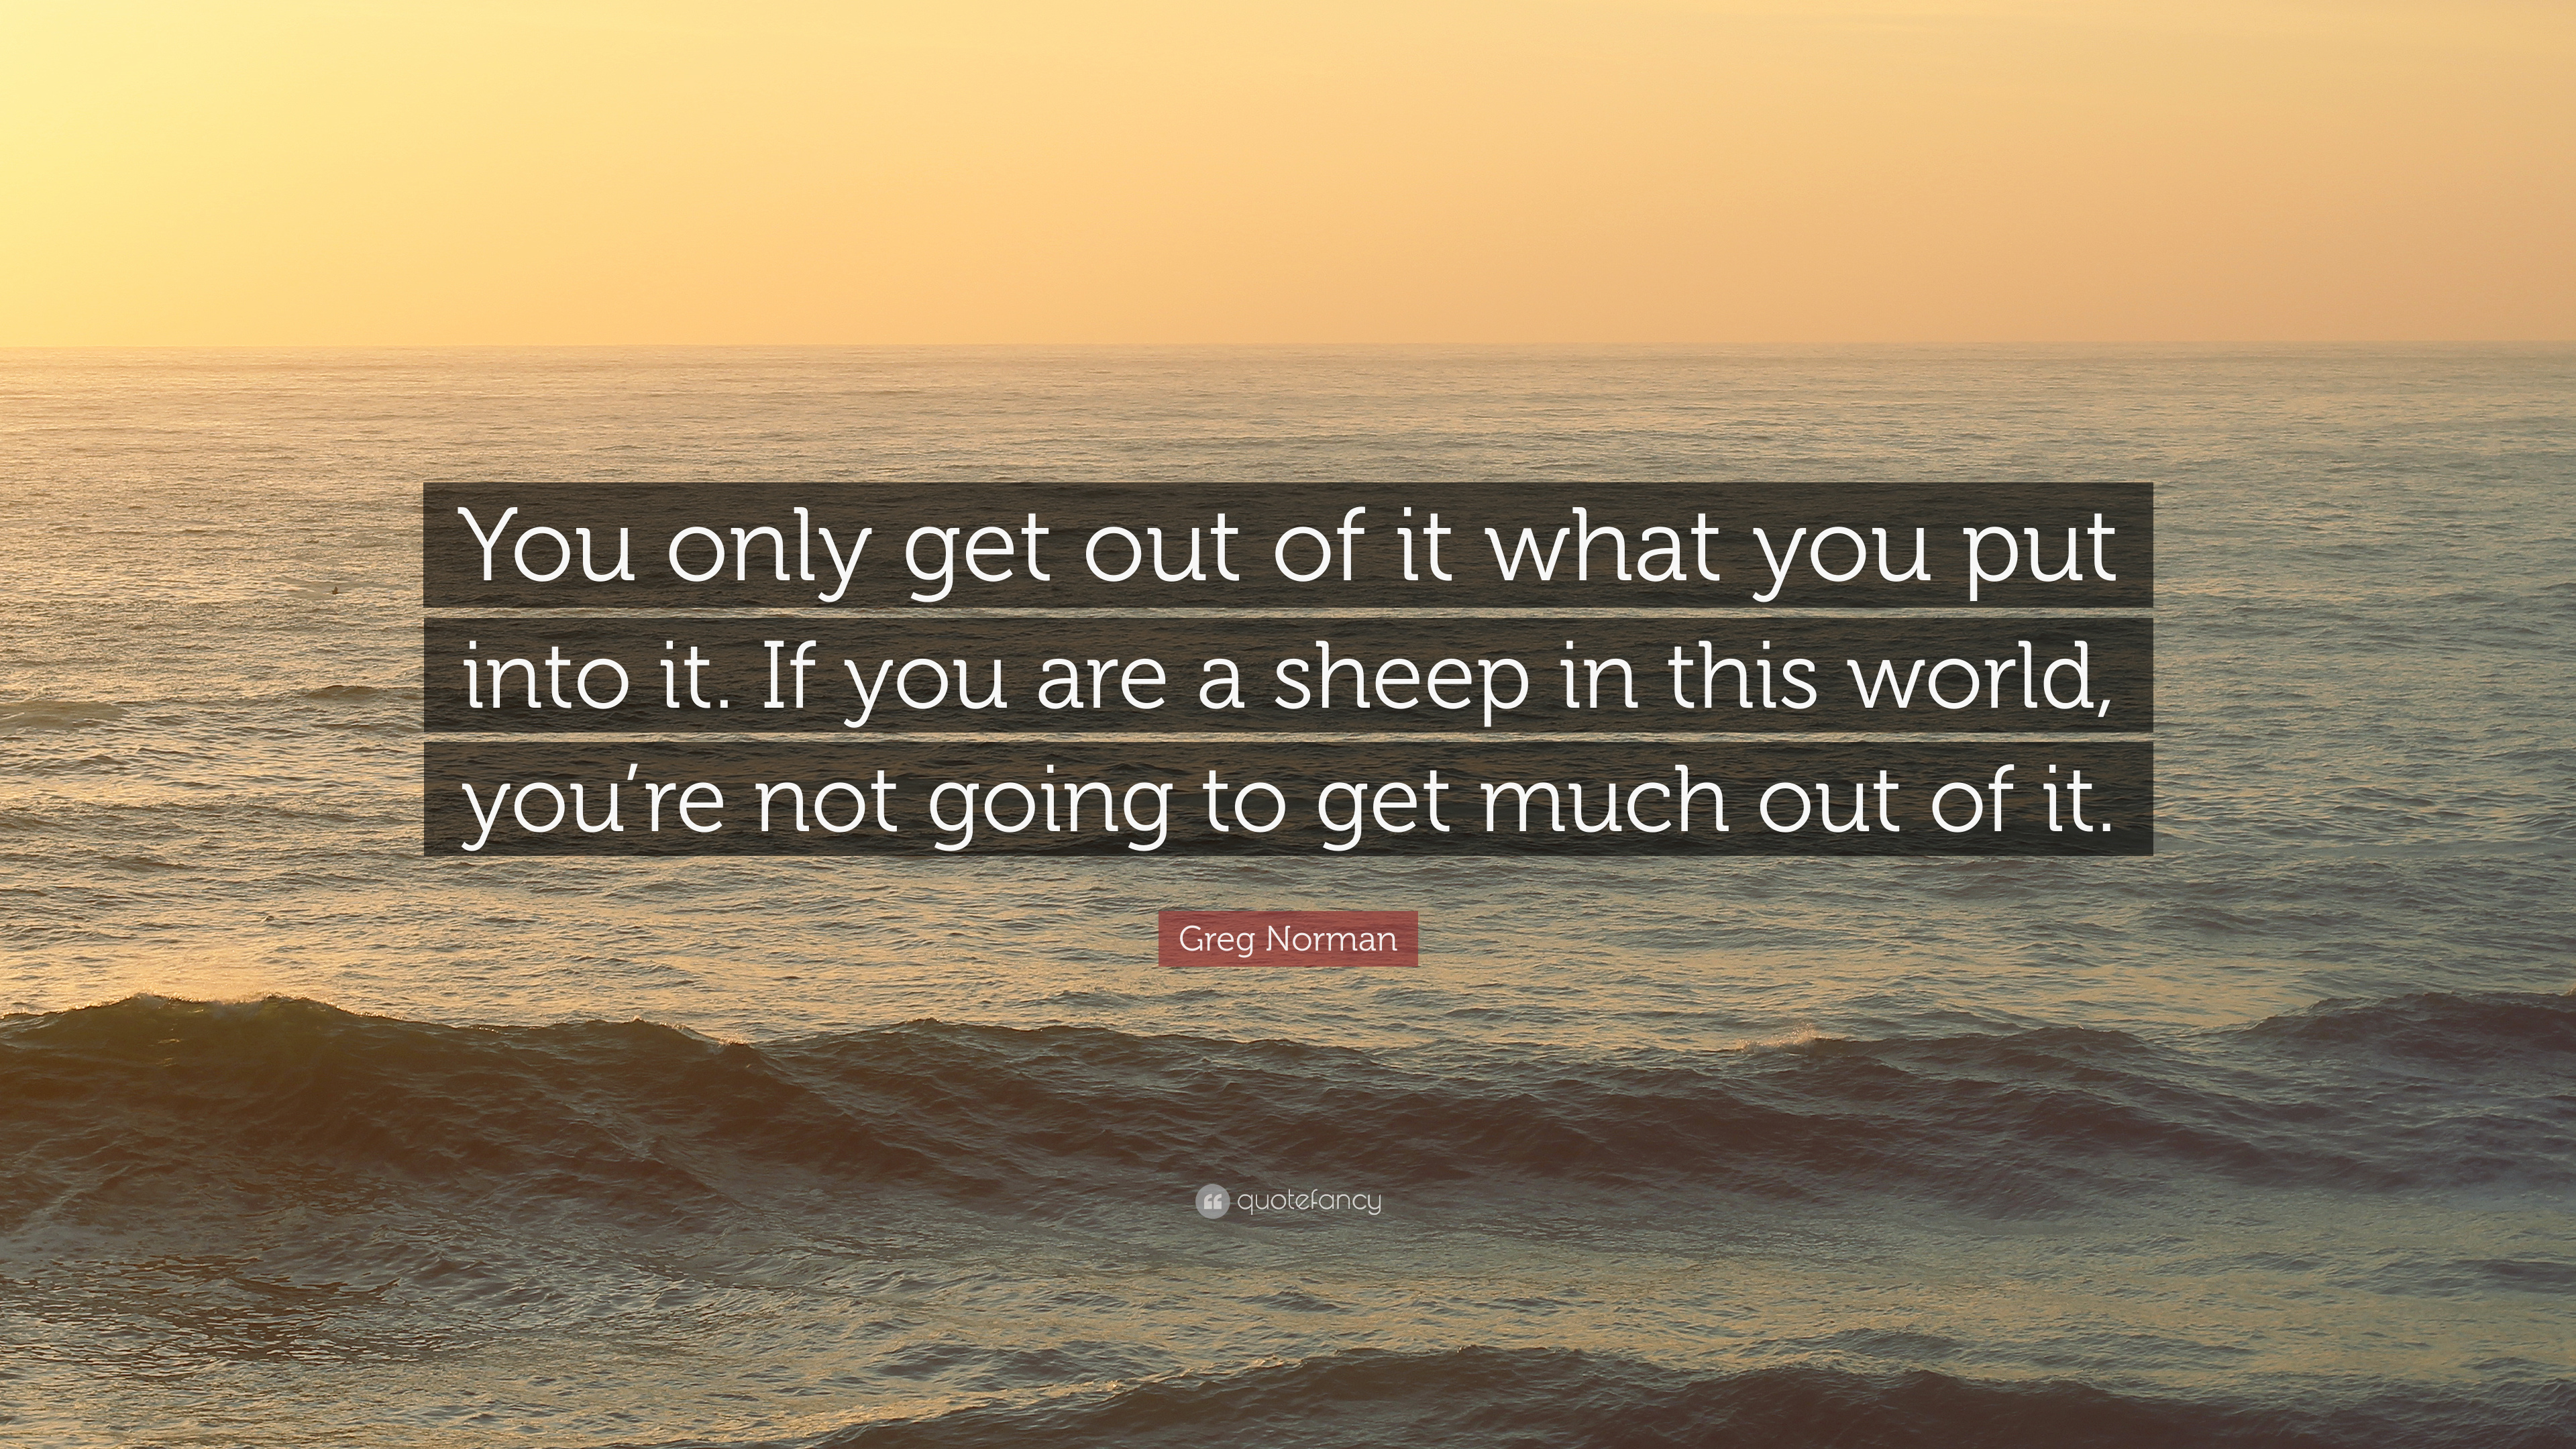 Greg Norman Quote You Only Get Out Of It What You Put Into It If